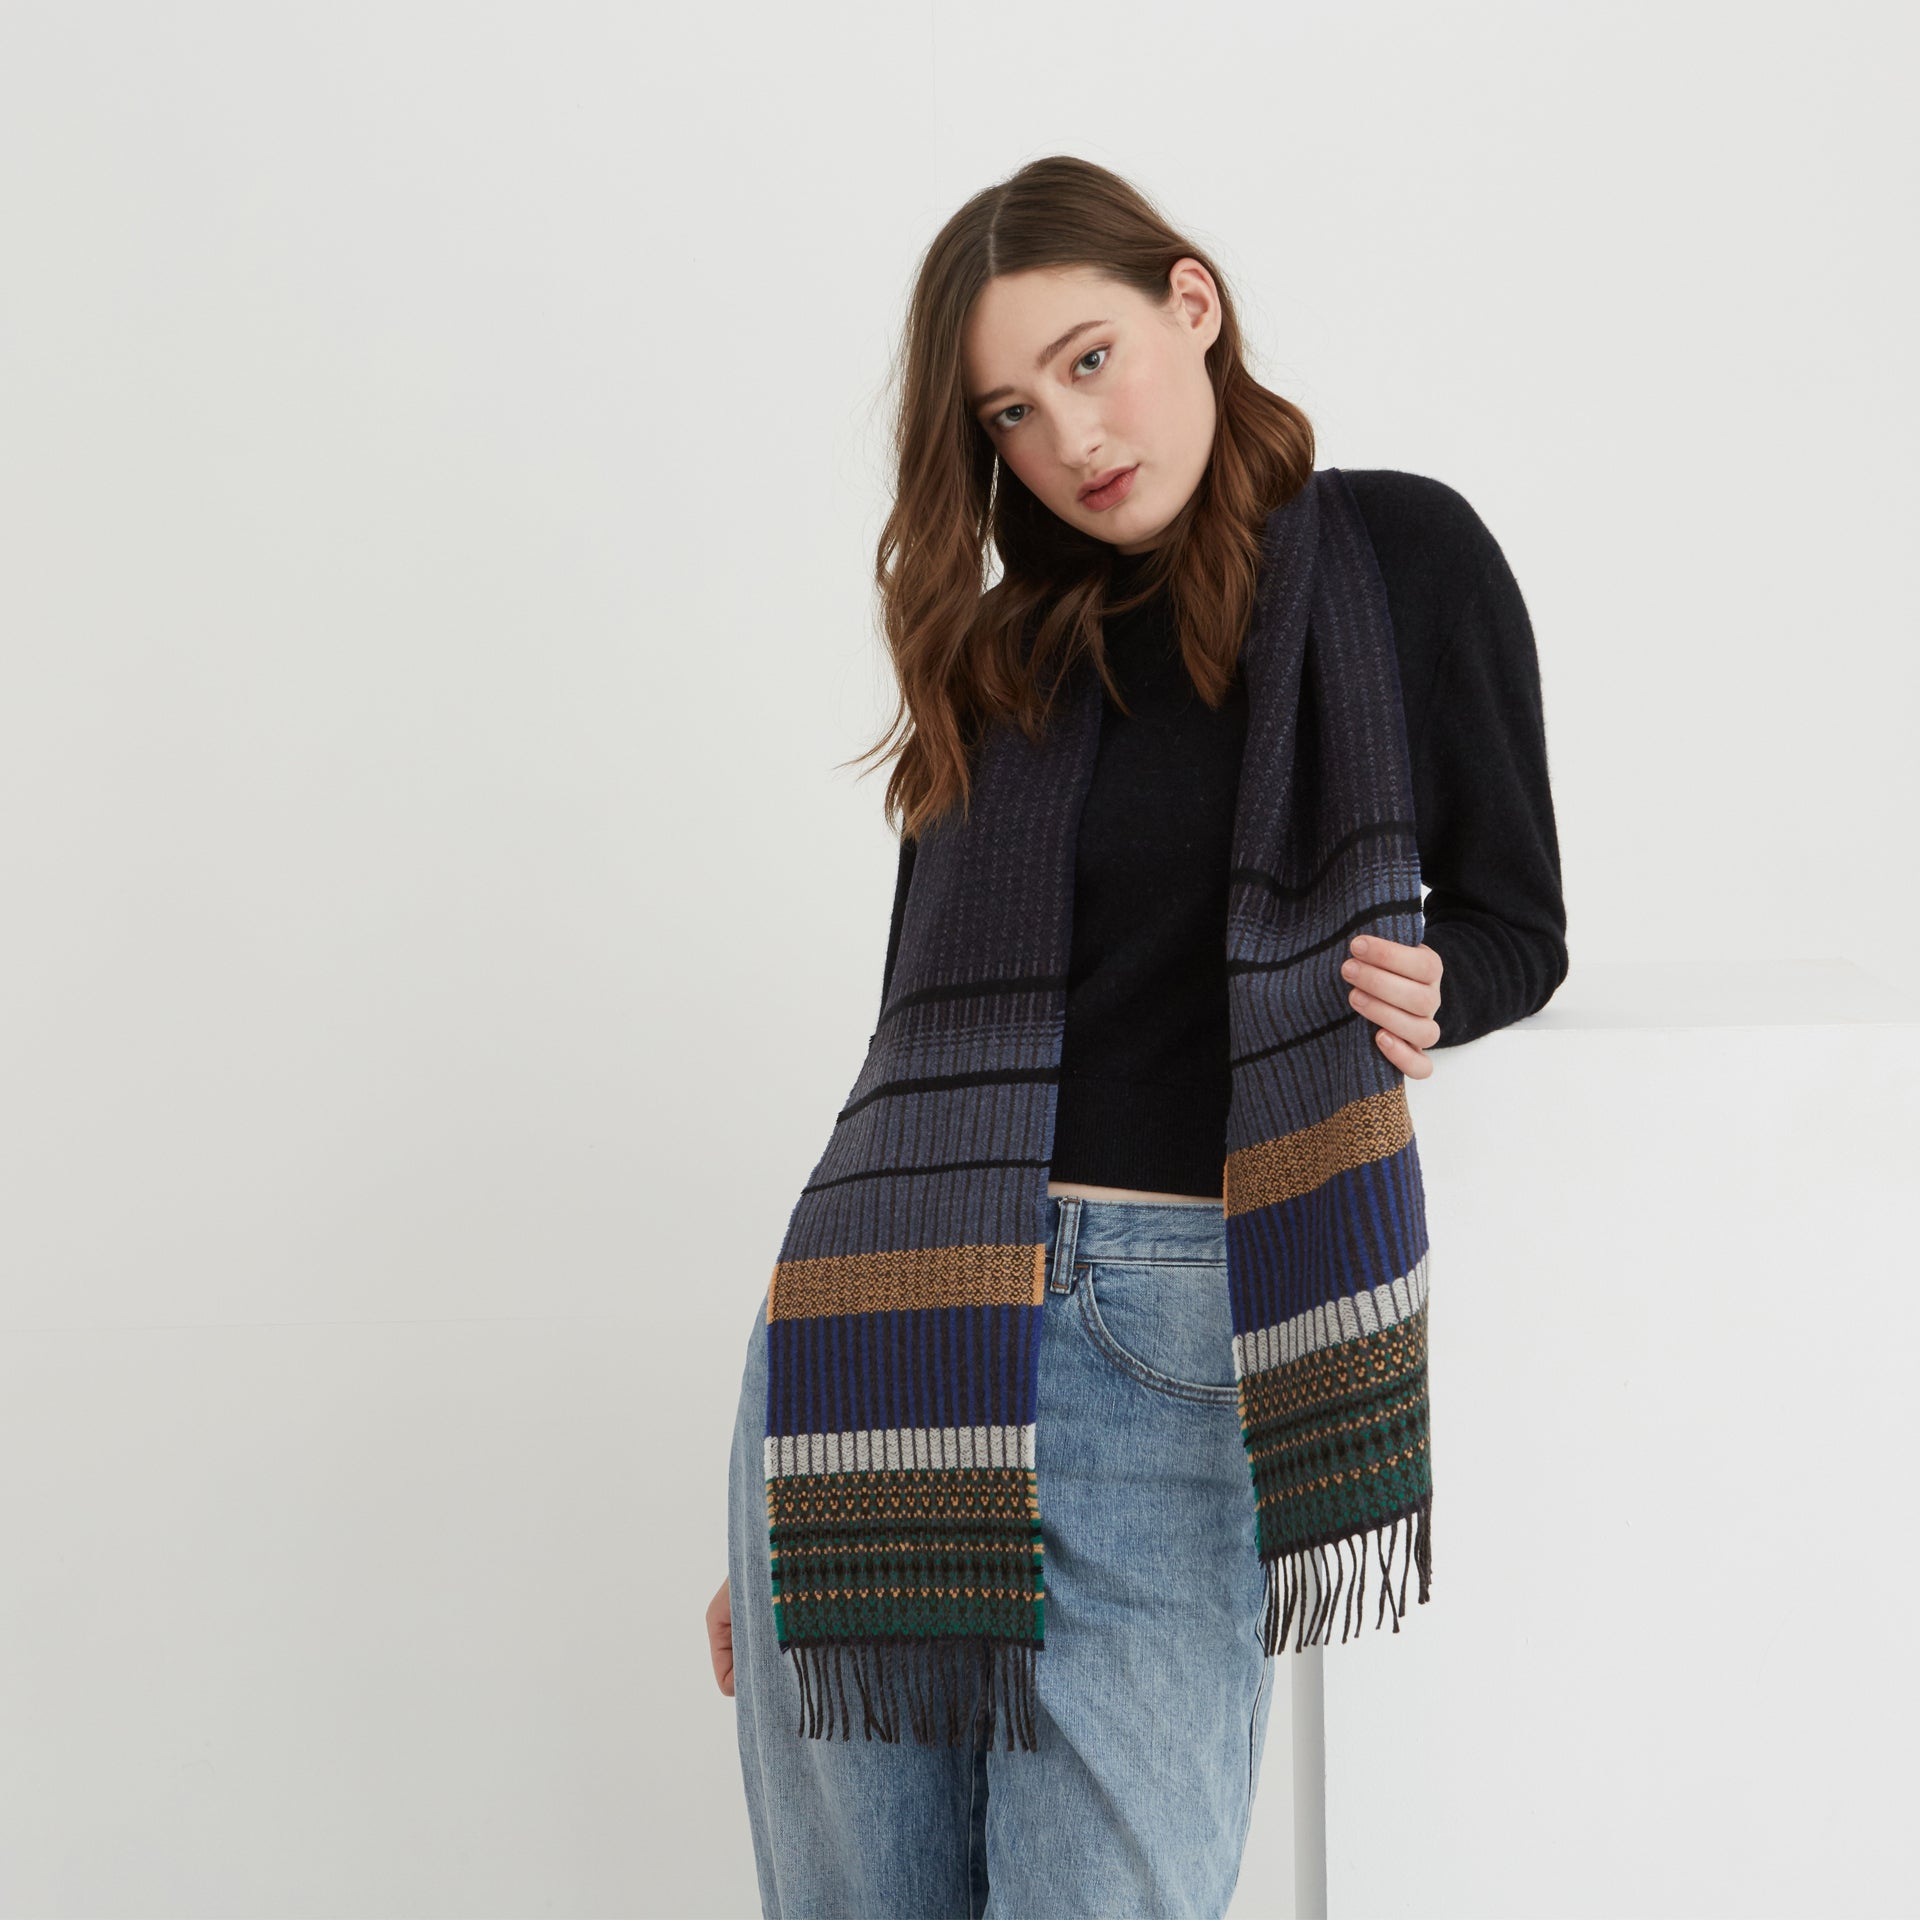 Wallace Sewell Scarf - Kyoto Navy